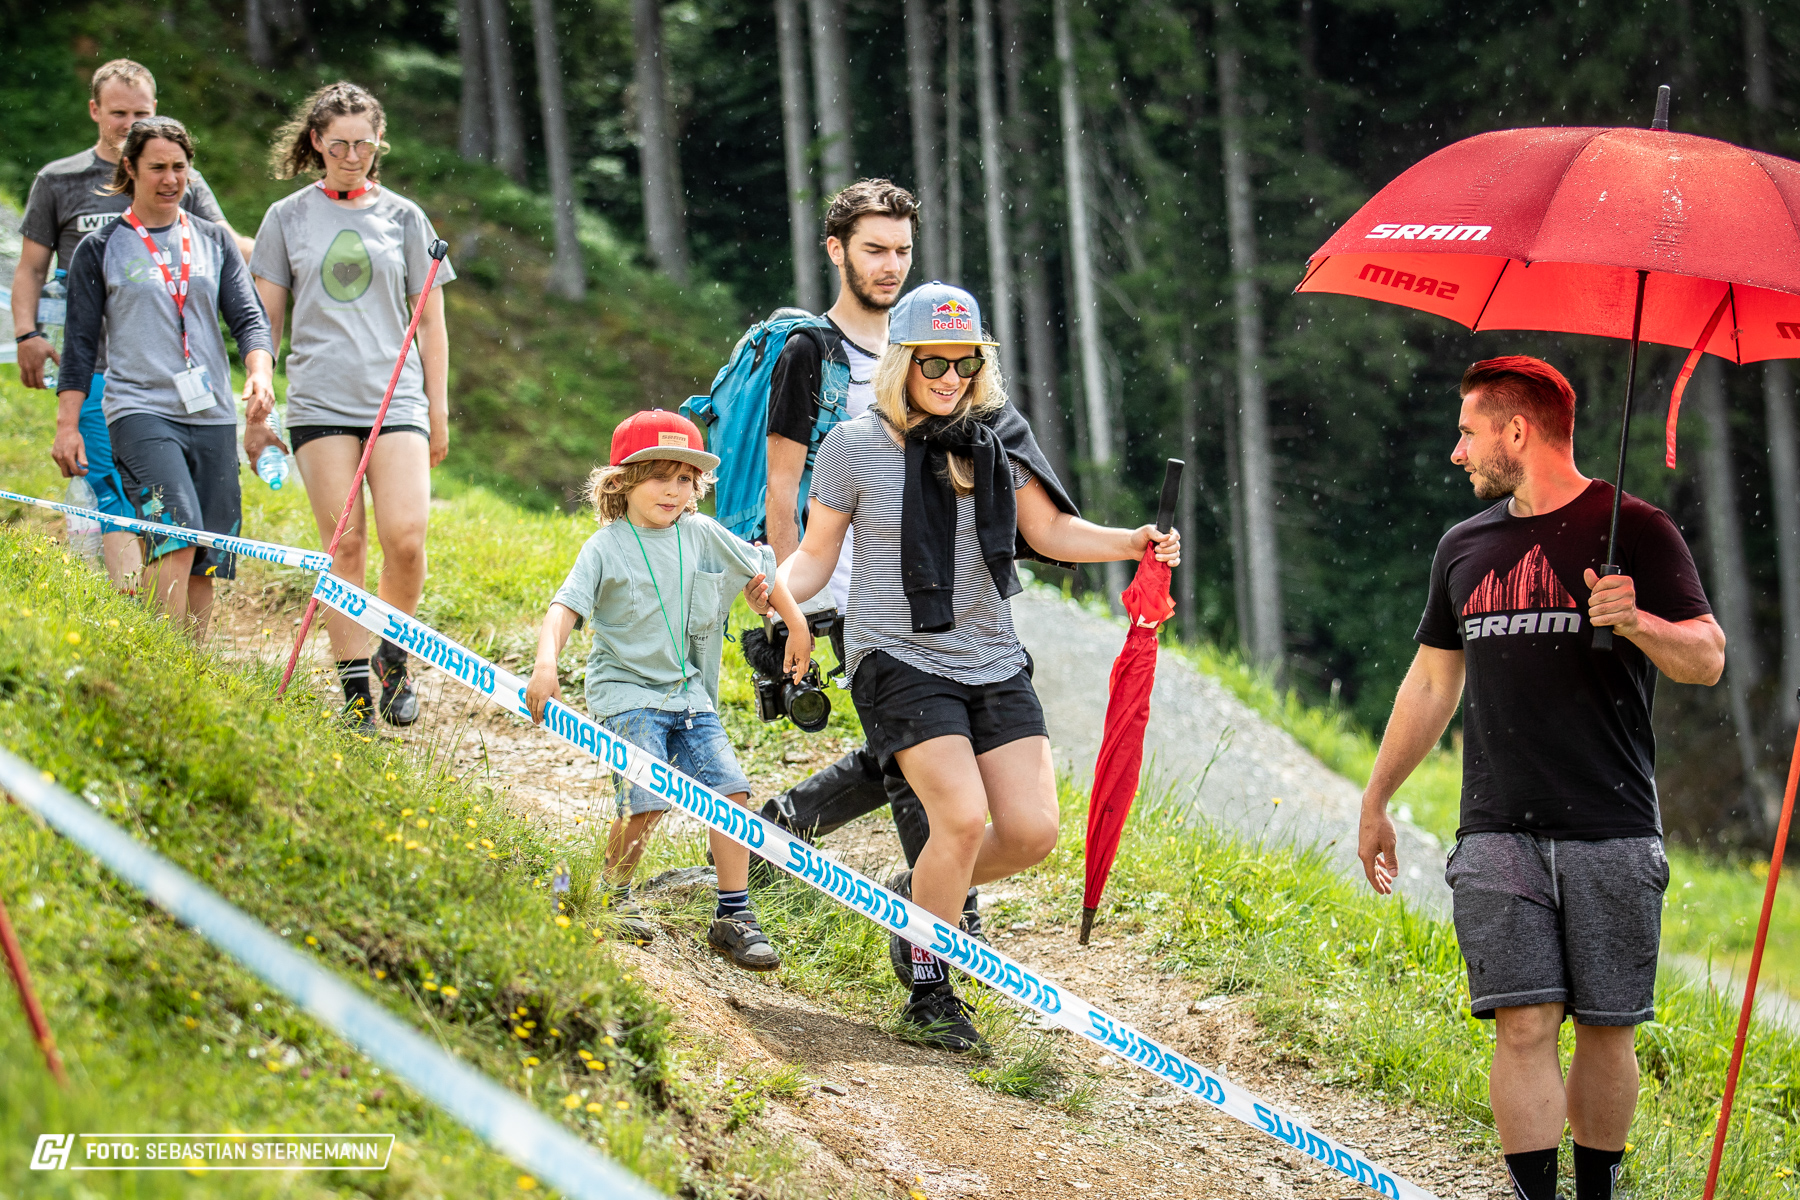 Trackwalk Leogang 276